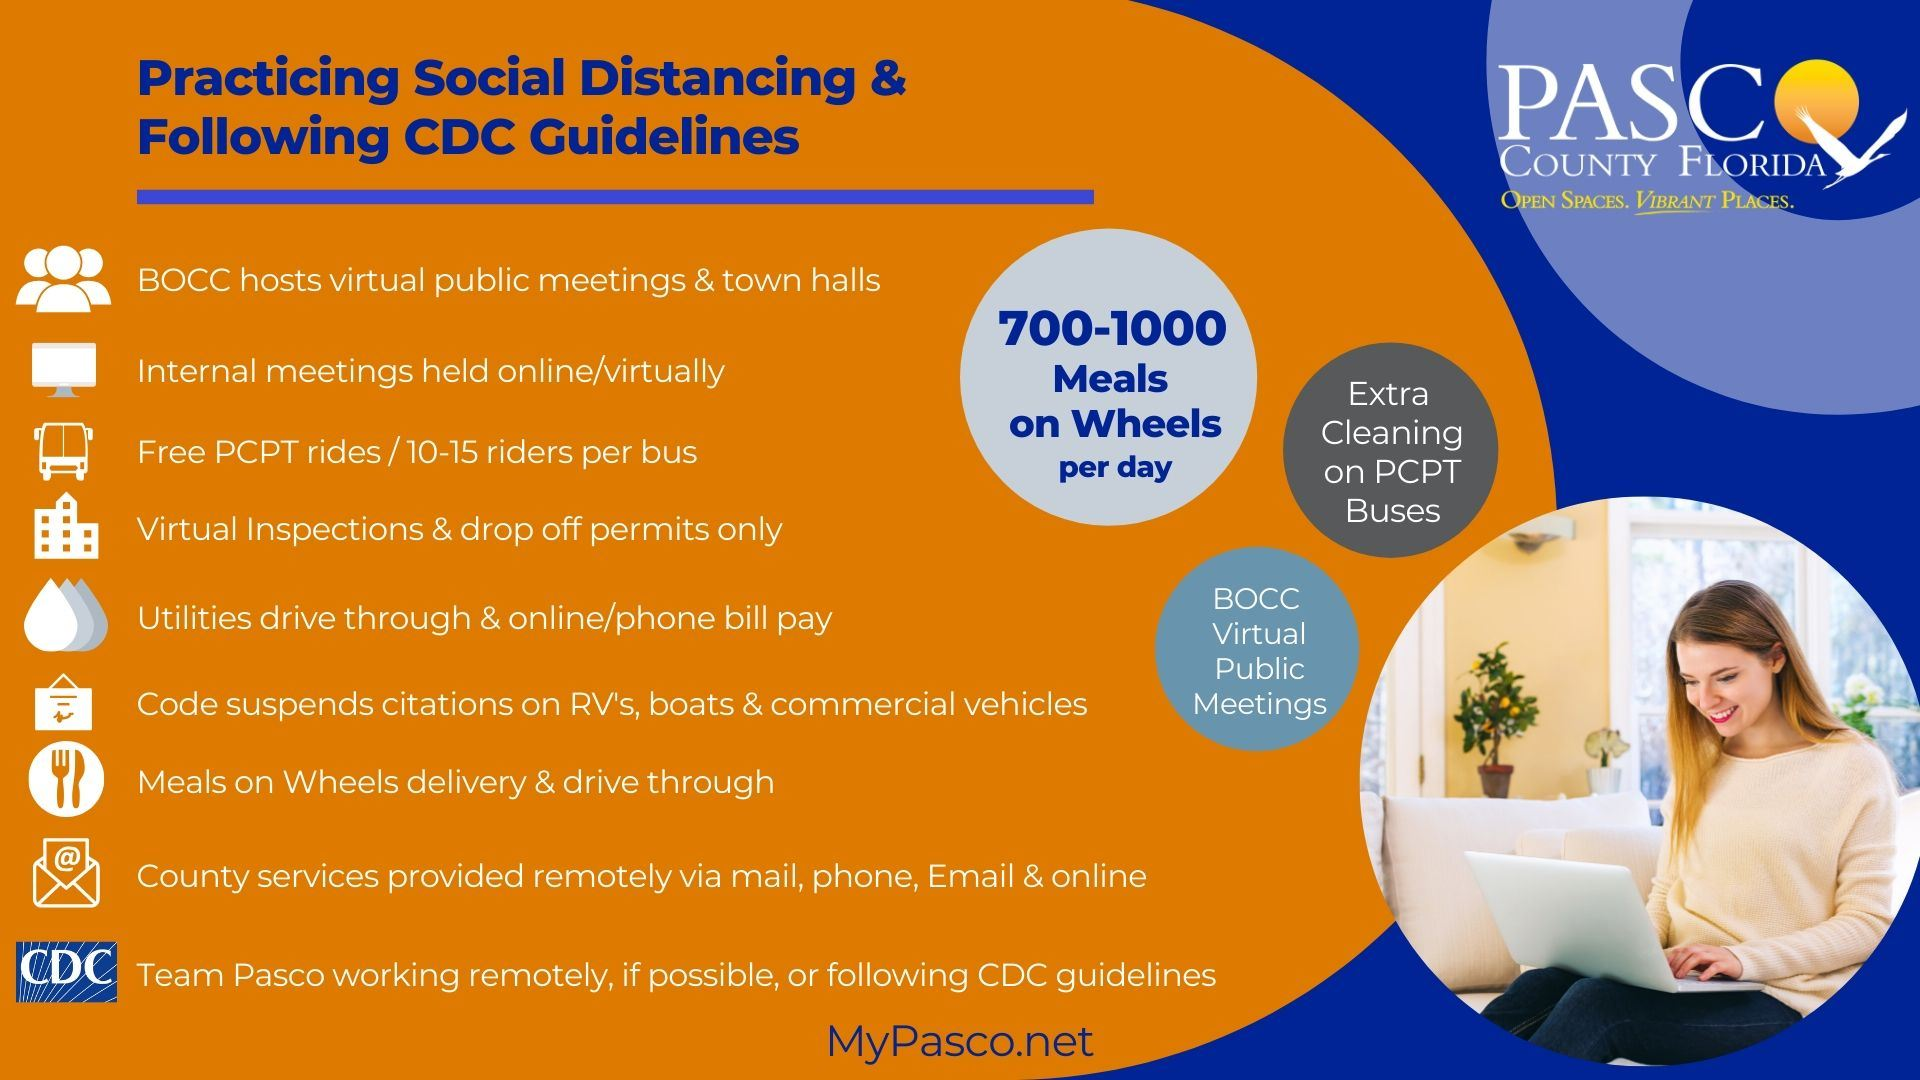 4.14.20 (EOC) Social Distancing Infographic